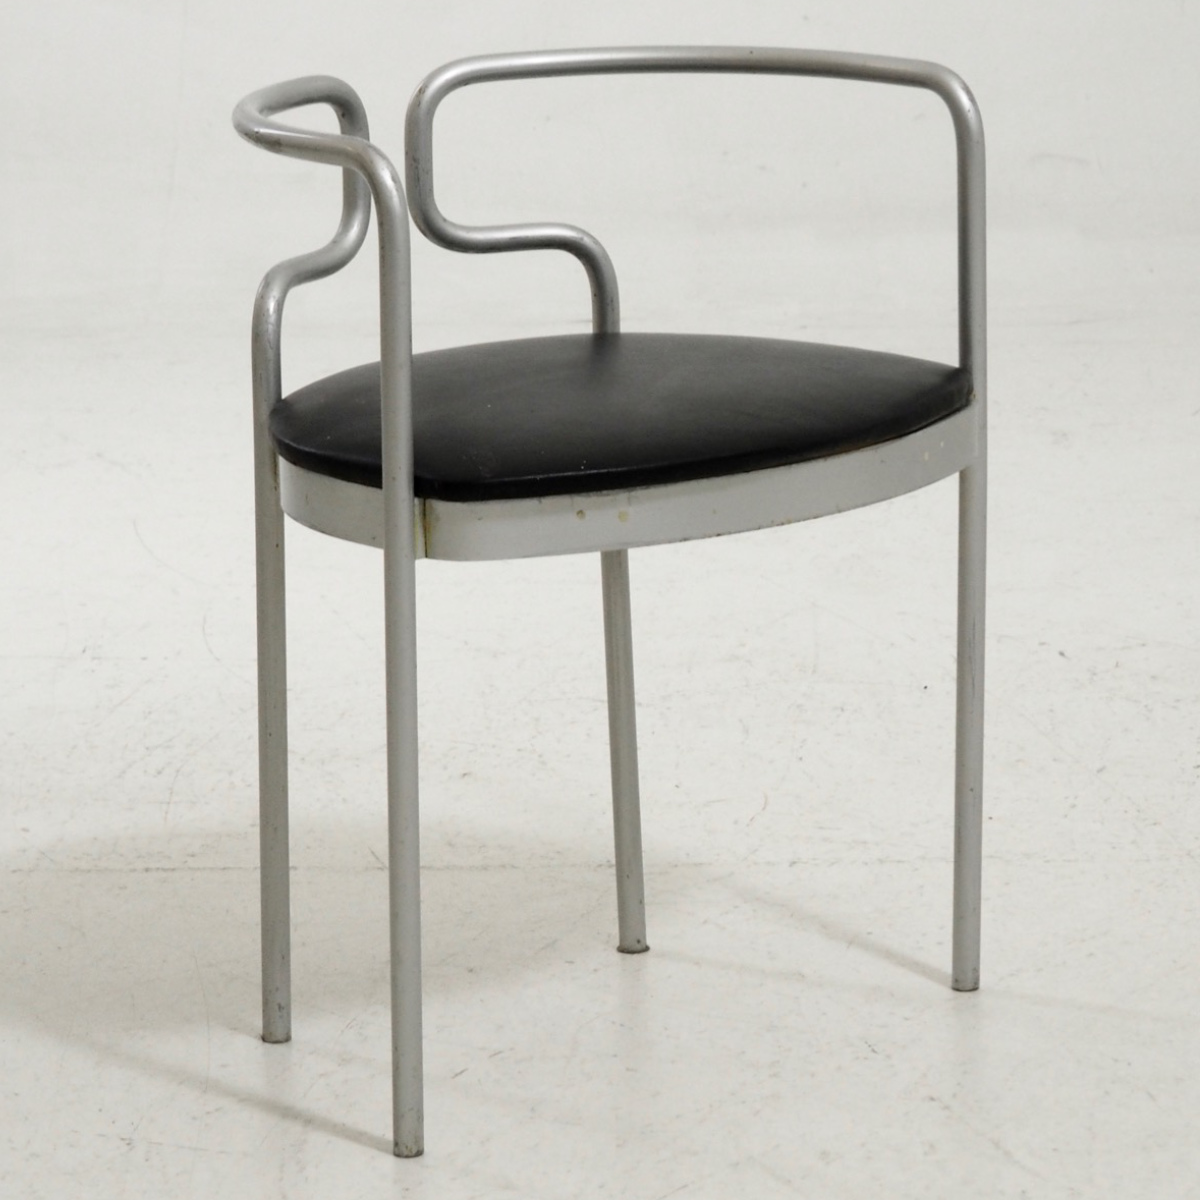 Rare Danish Chair, Design from 1967. - € 500